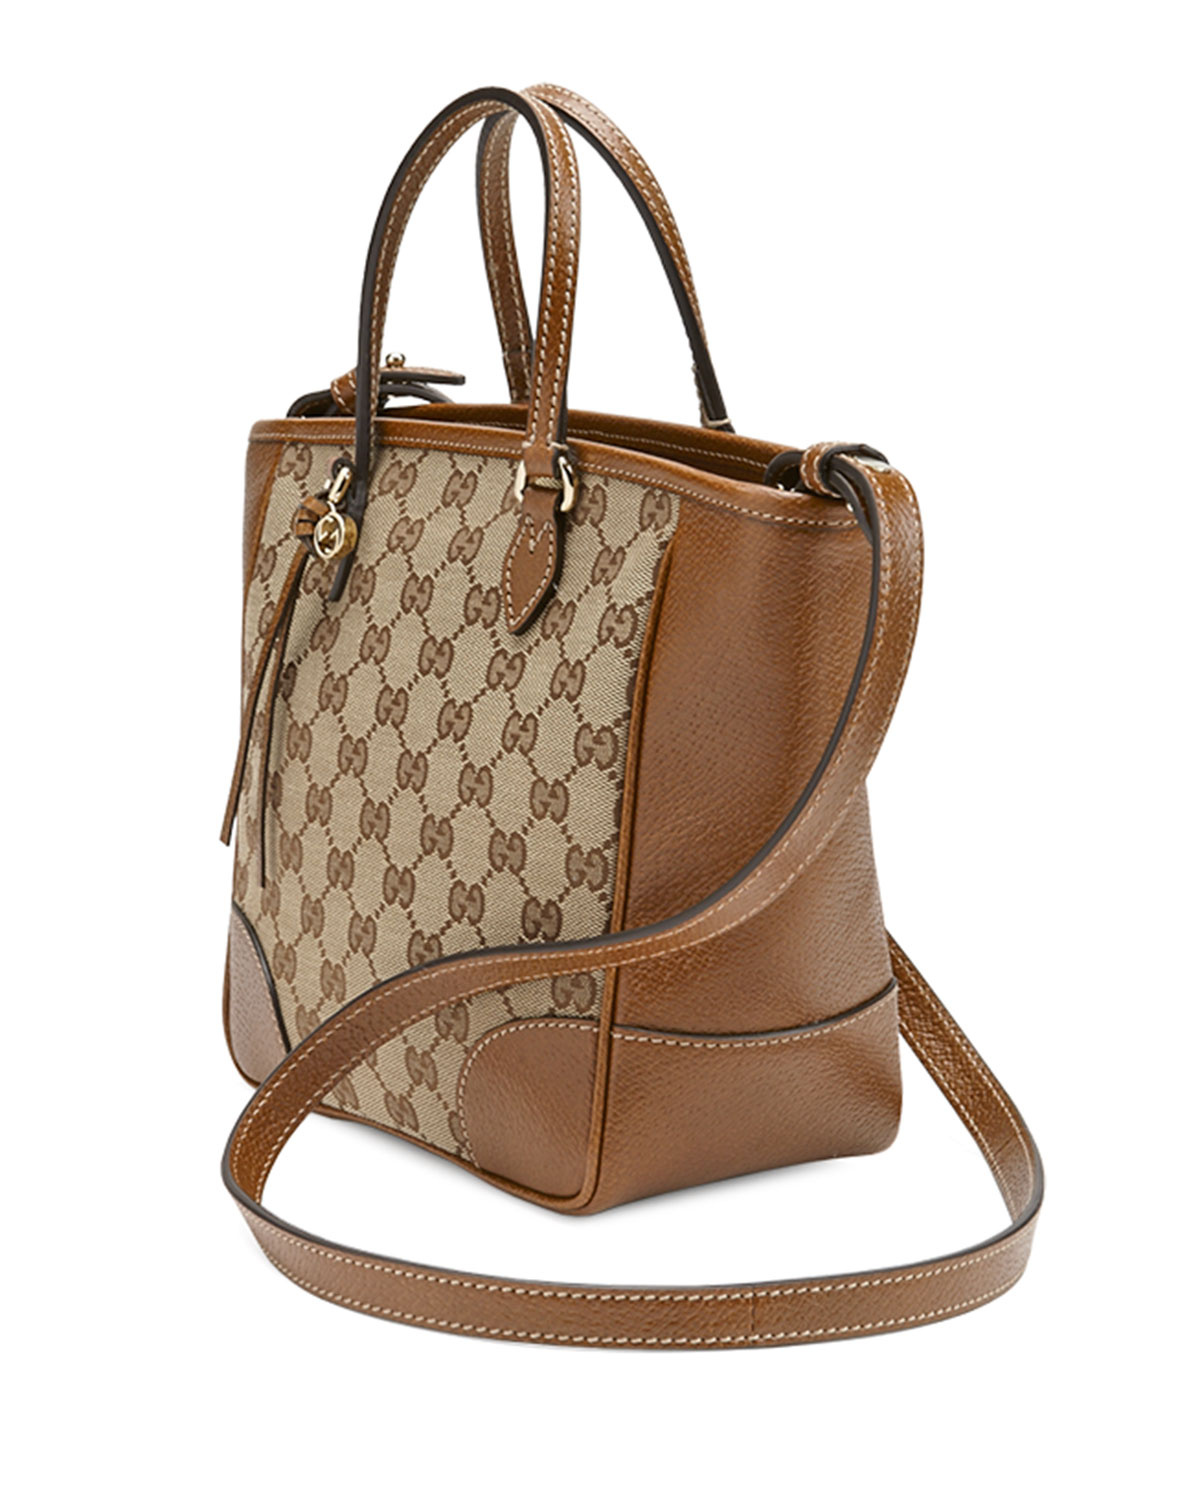 a22749464504 Lyst - Gucci Bree Small Gg Canvas Tote Bag in Brown